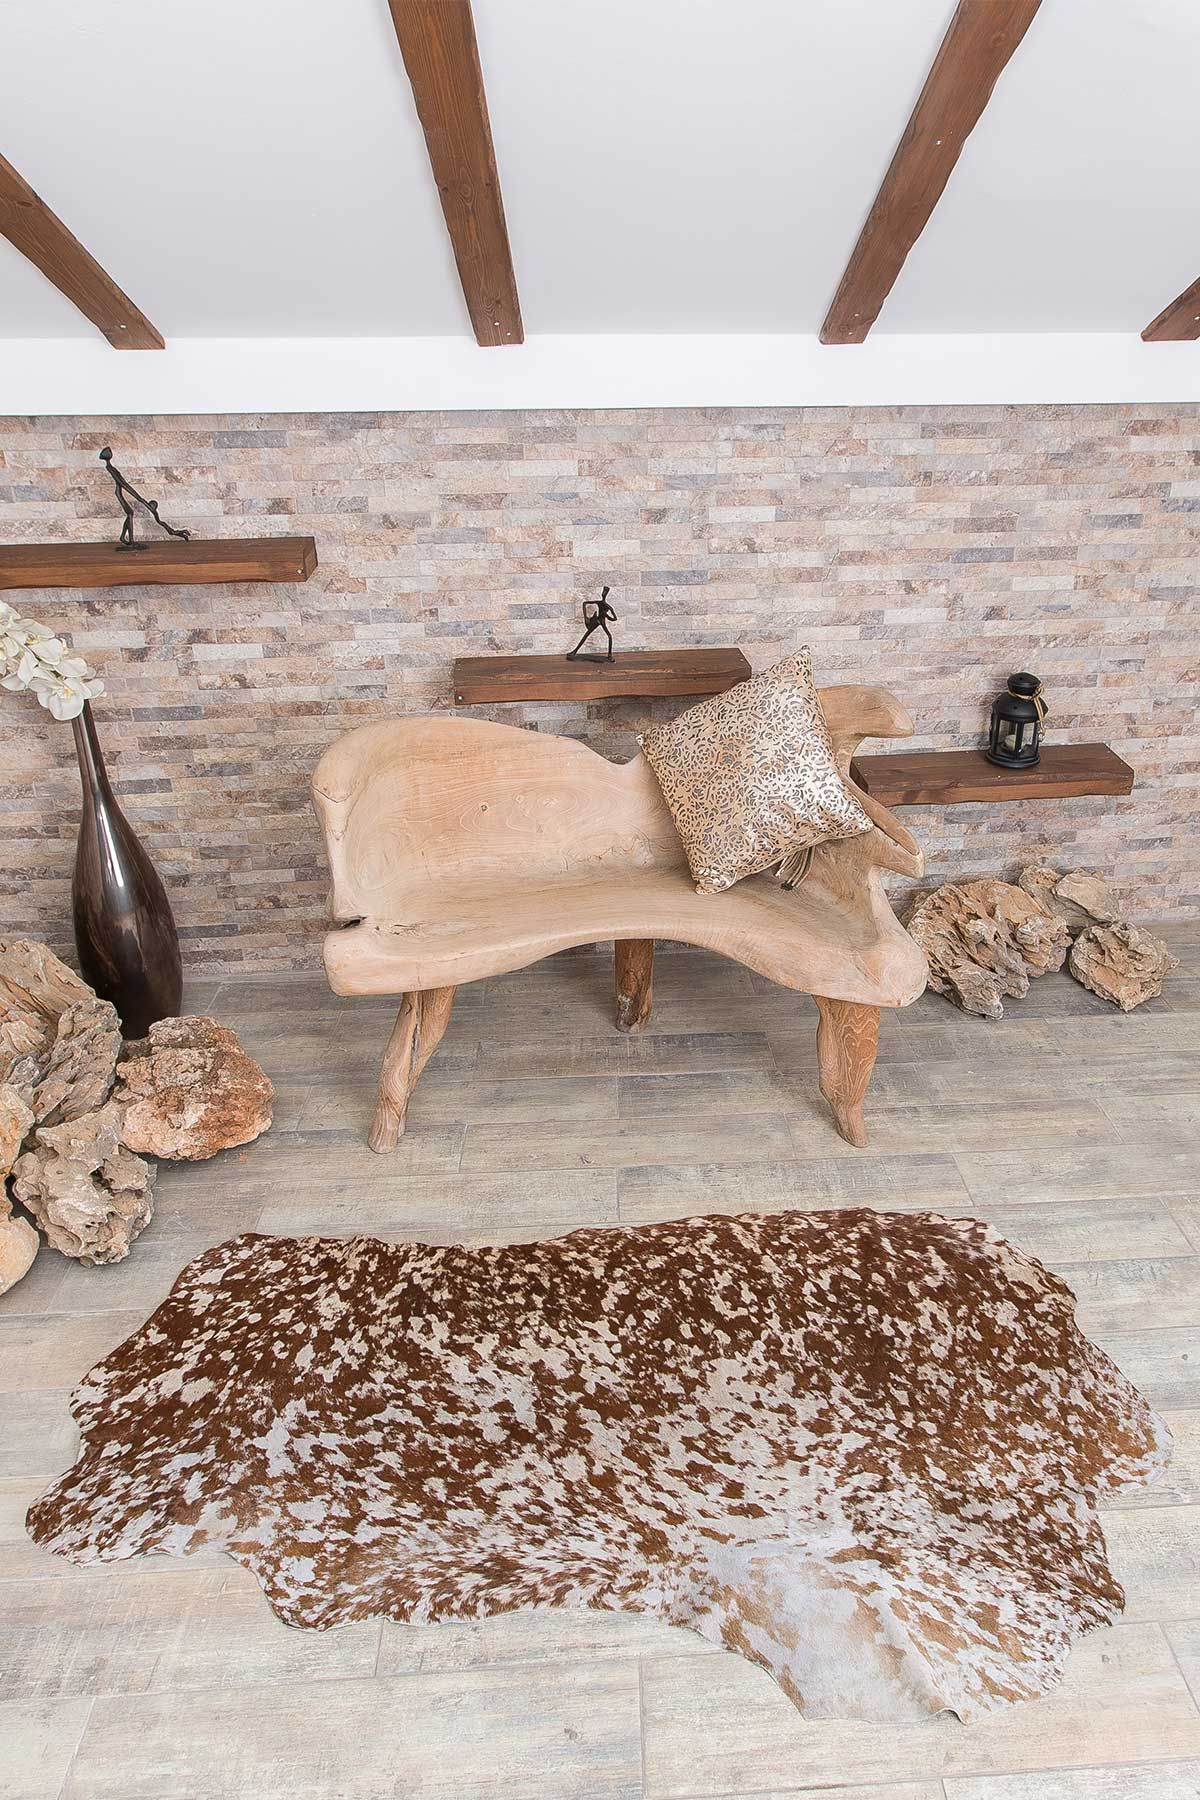 Erdogan Deri Decorative Calfskin Rug Natural